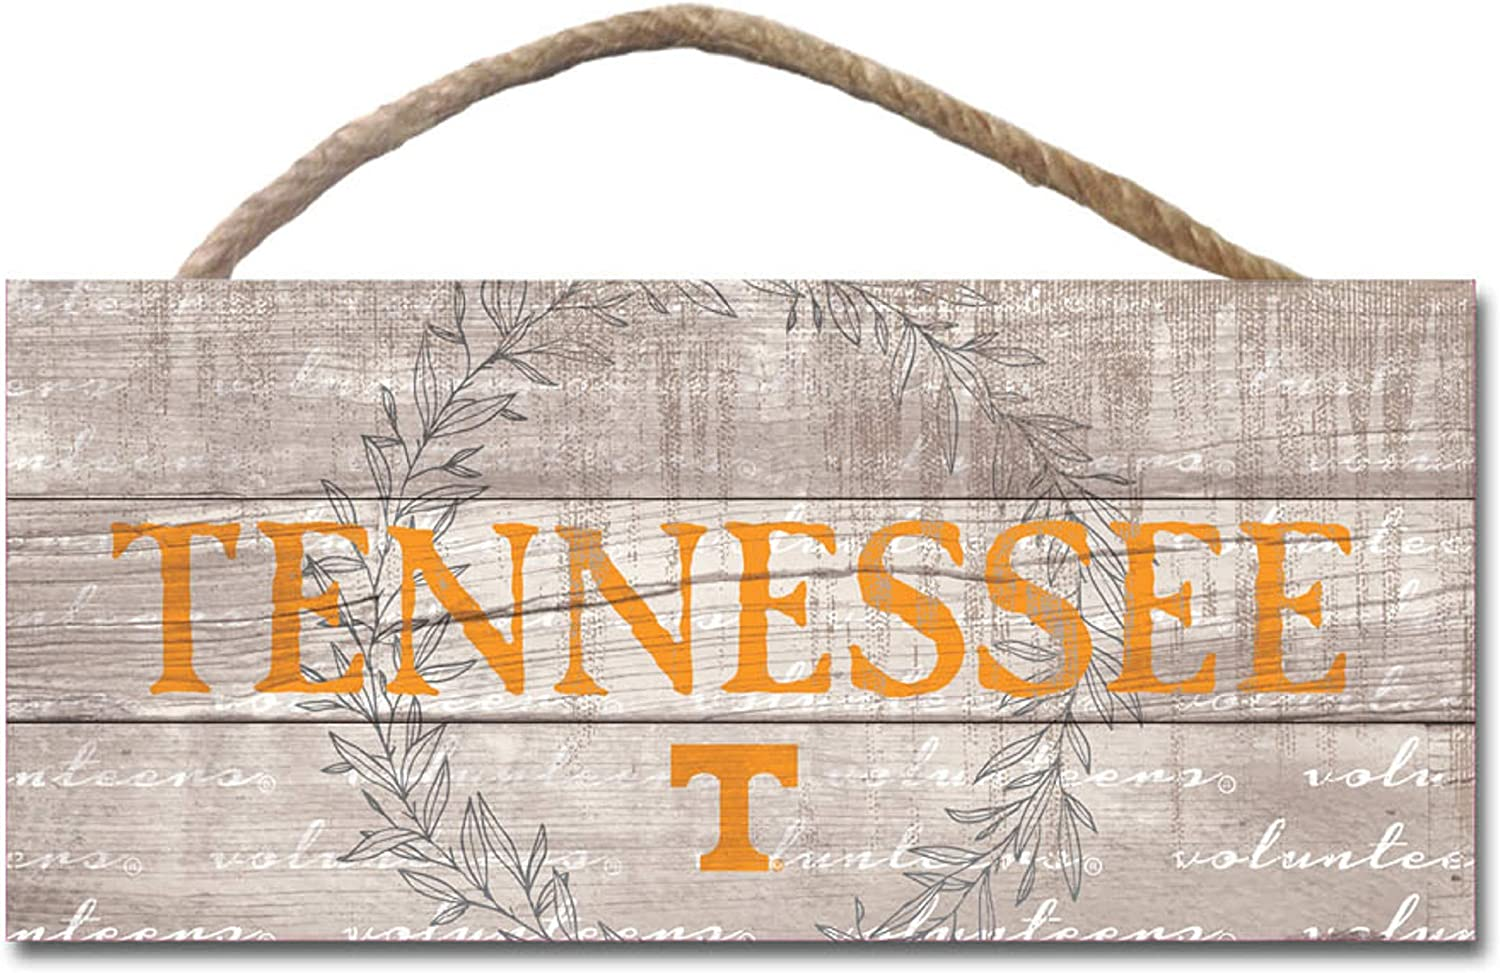 One Size Wood NCAA Legacy Tennessee Volunteers Wood Plank Hanging Sign 10x5